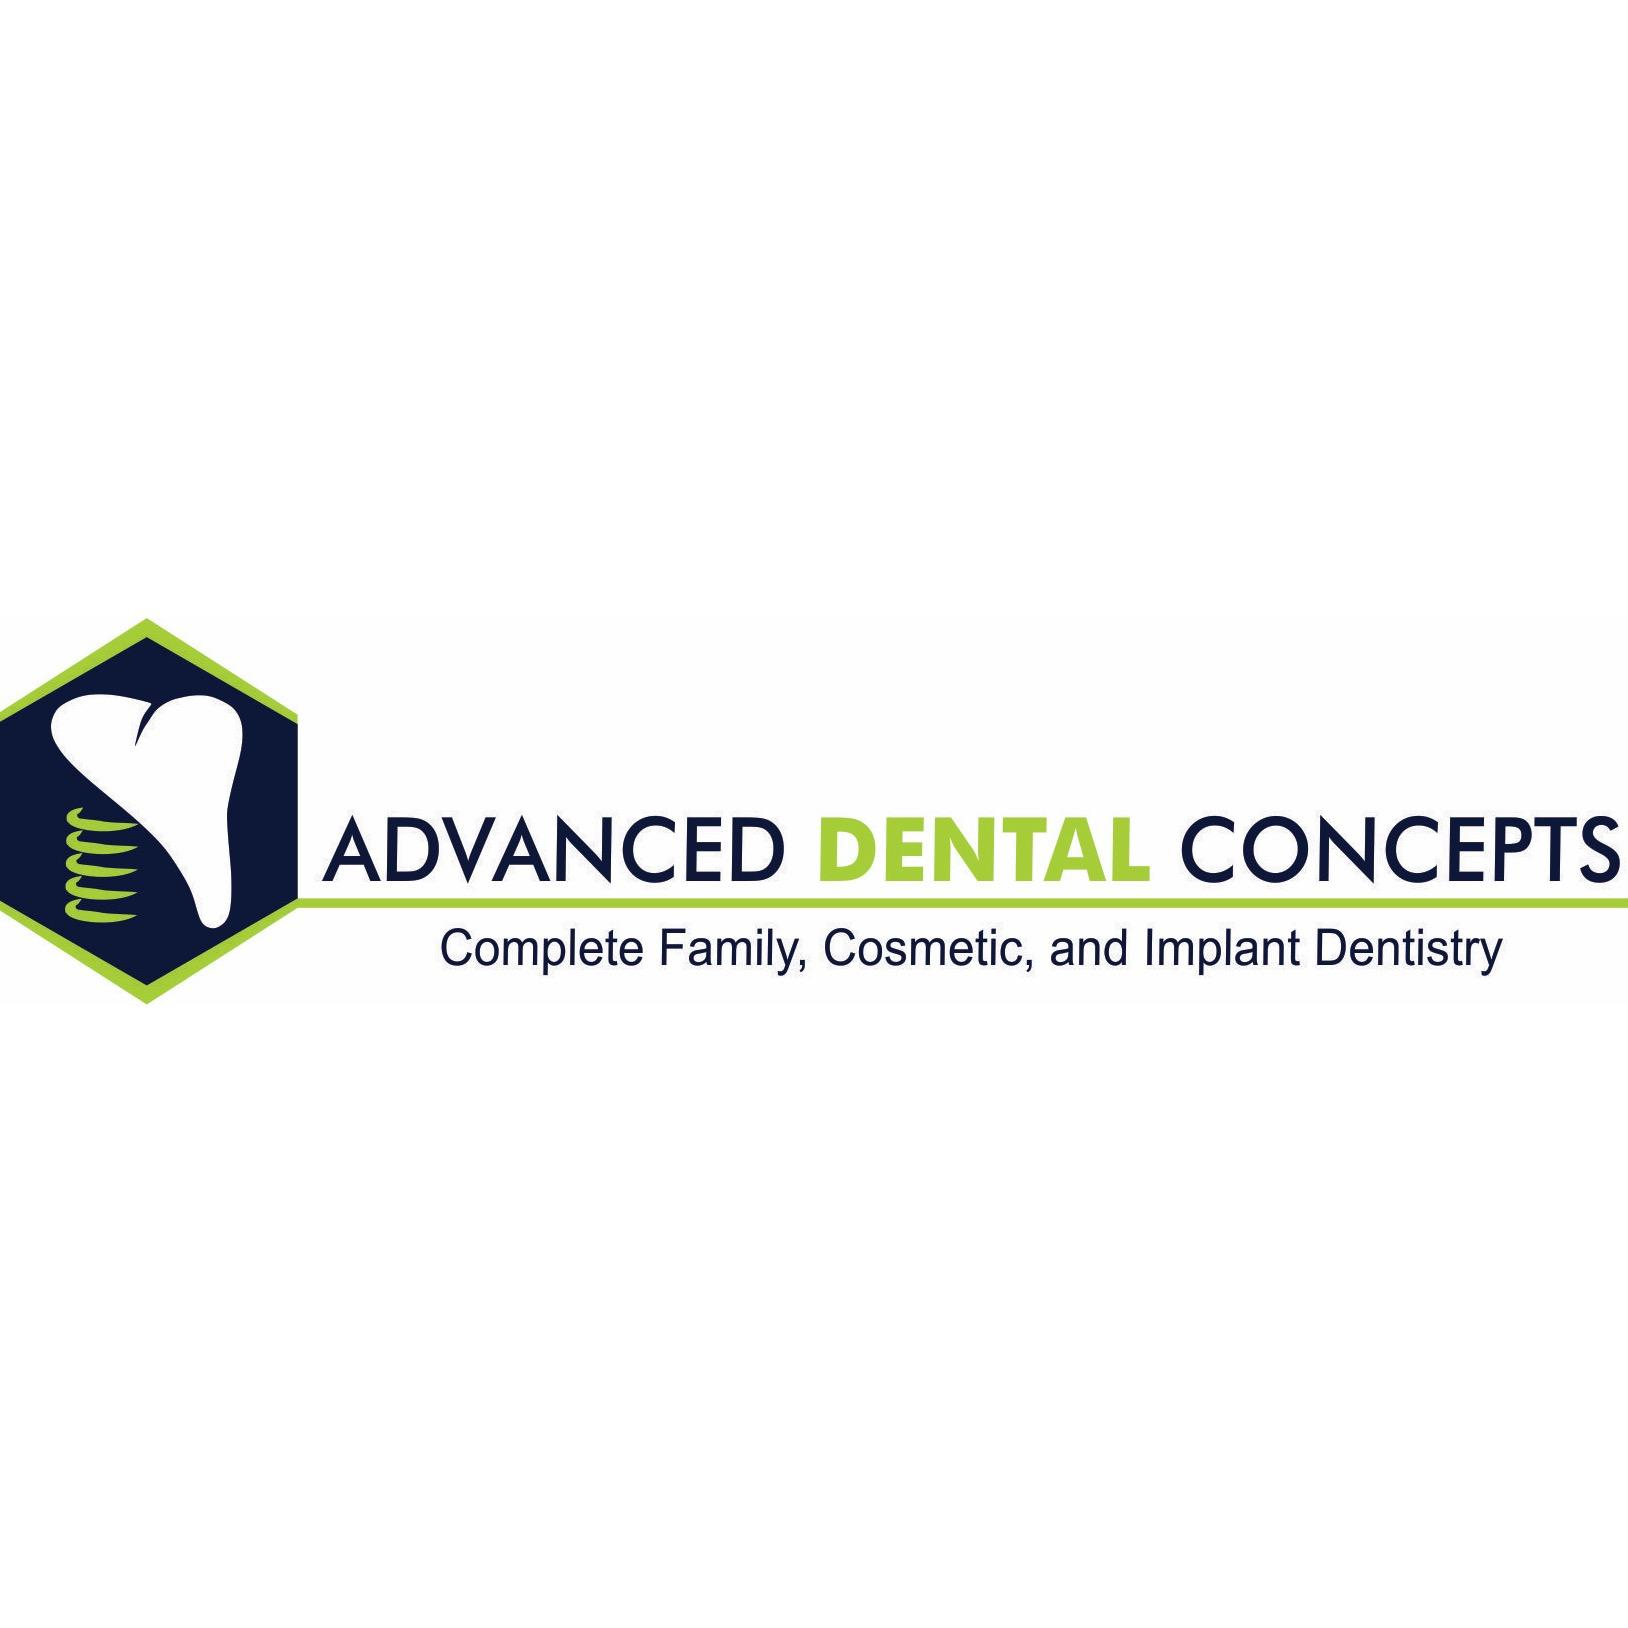 Advanced Dental Concepts image 9